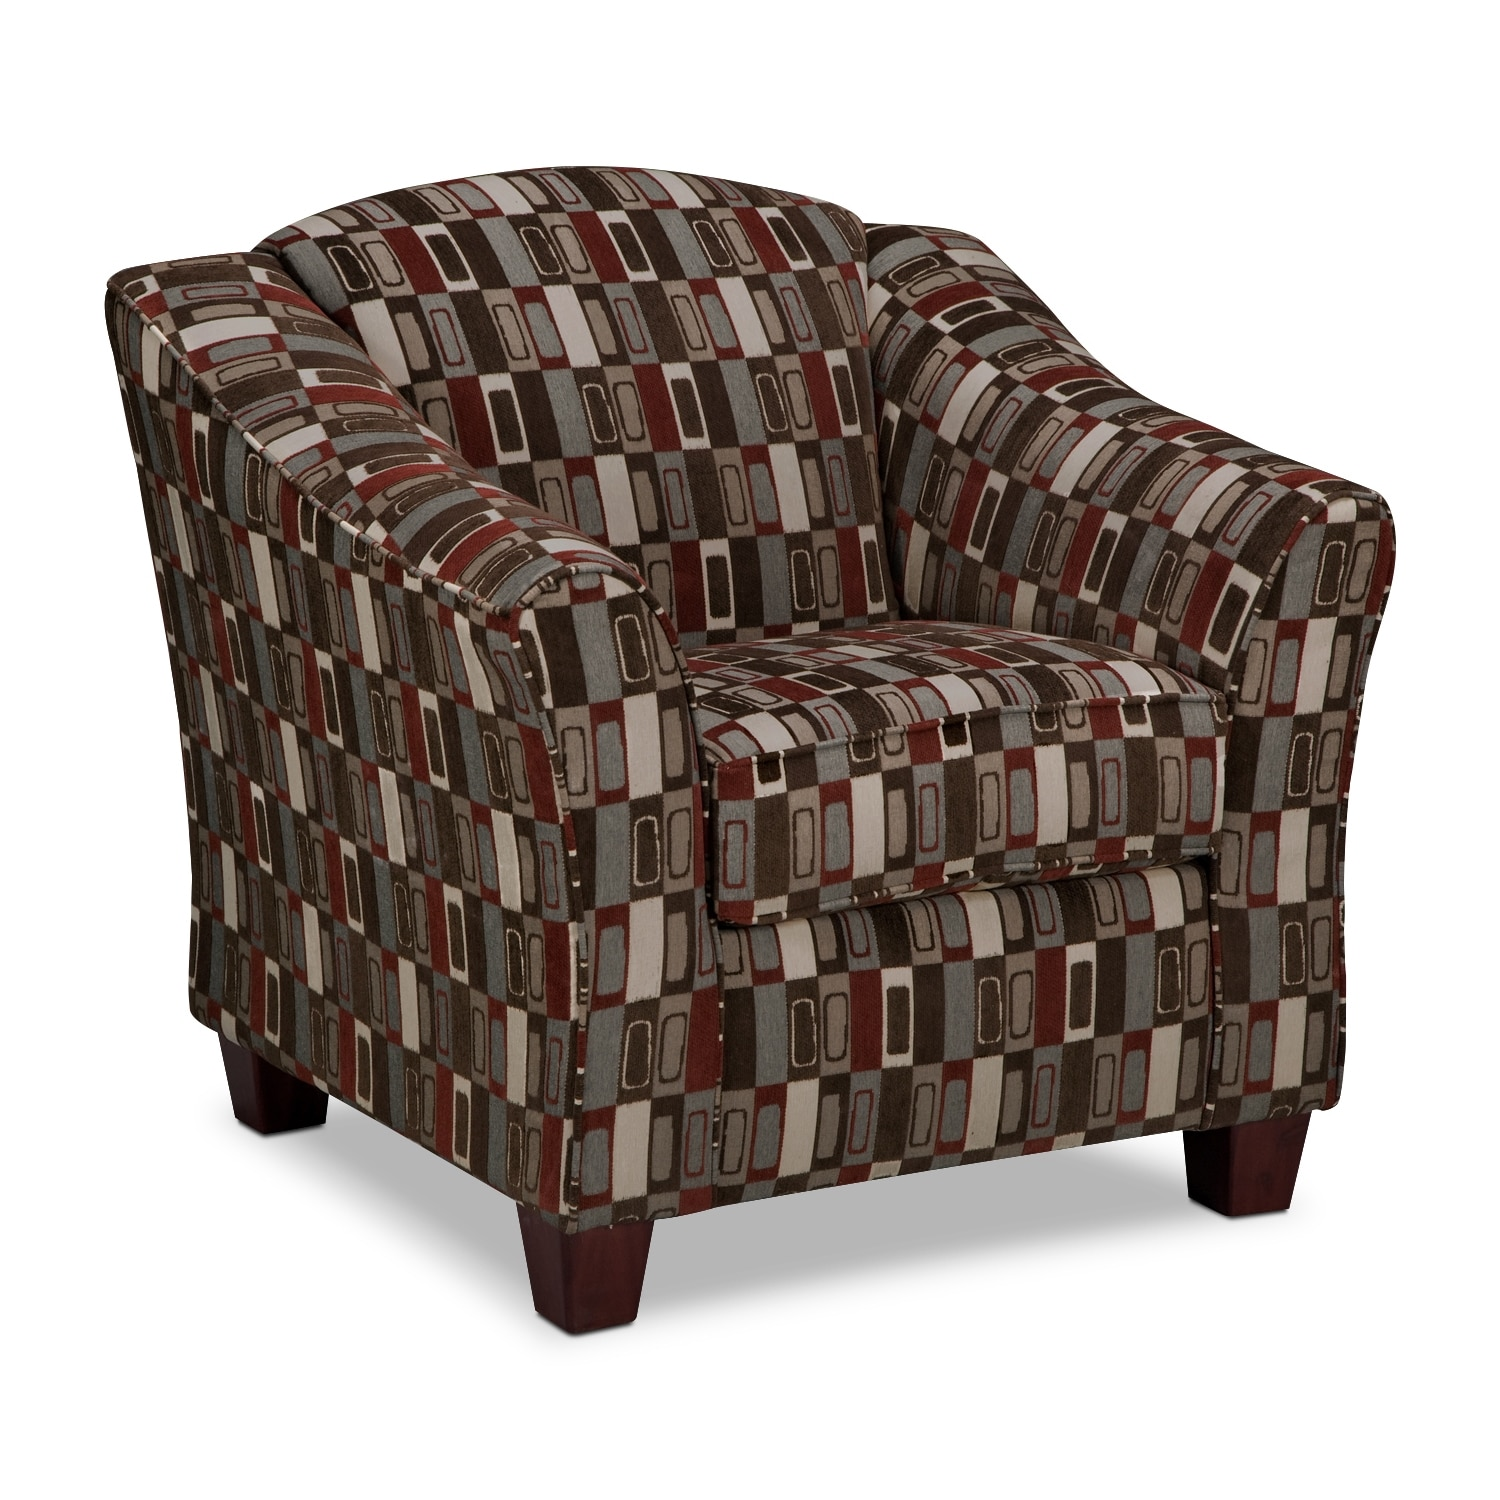 Monarch Accent Chair - Coffee And Cranberry